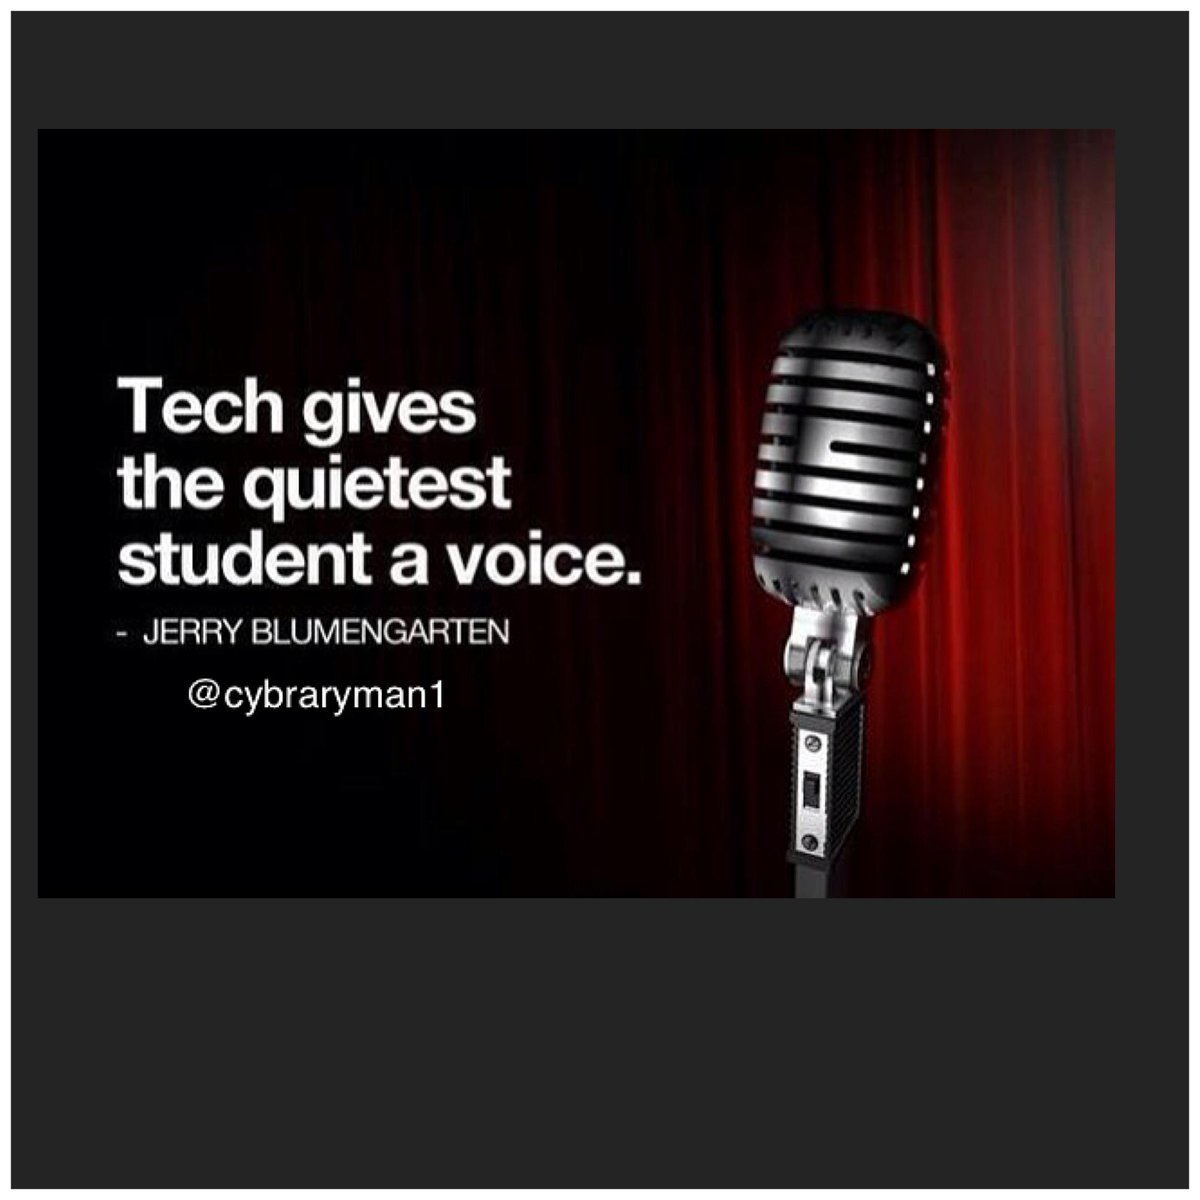 My Tech Integration page http://t.co/piRqUi7Xqu #1stchat http://t.co/1pX7300LrM